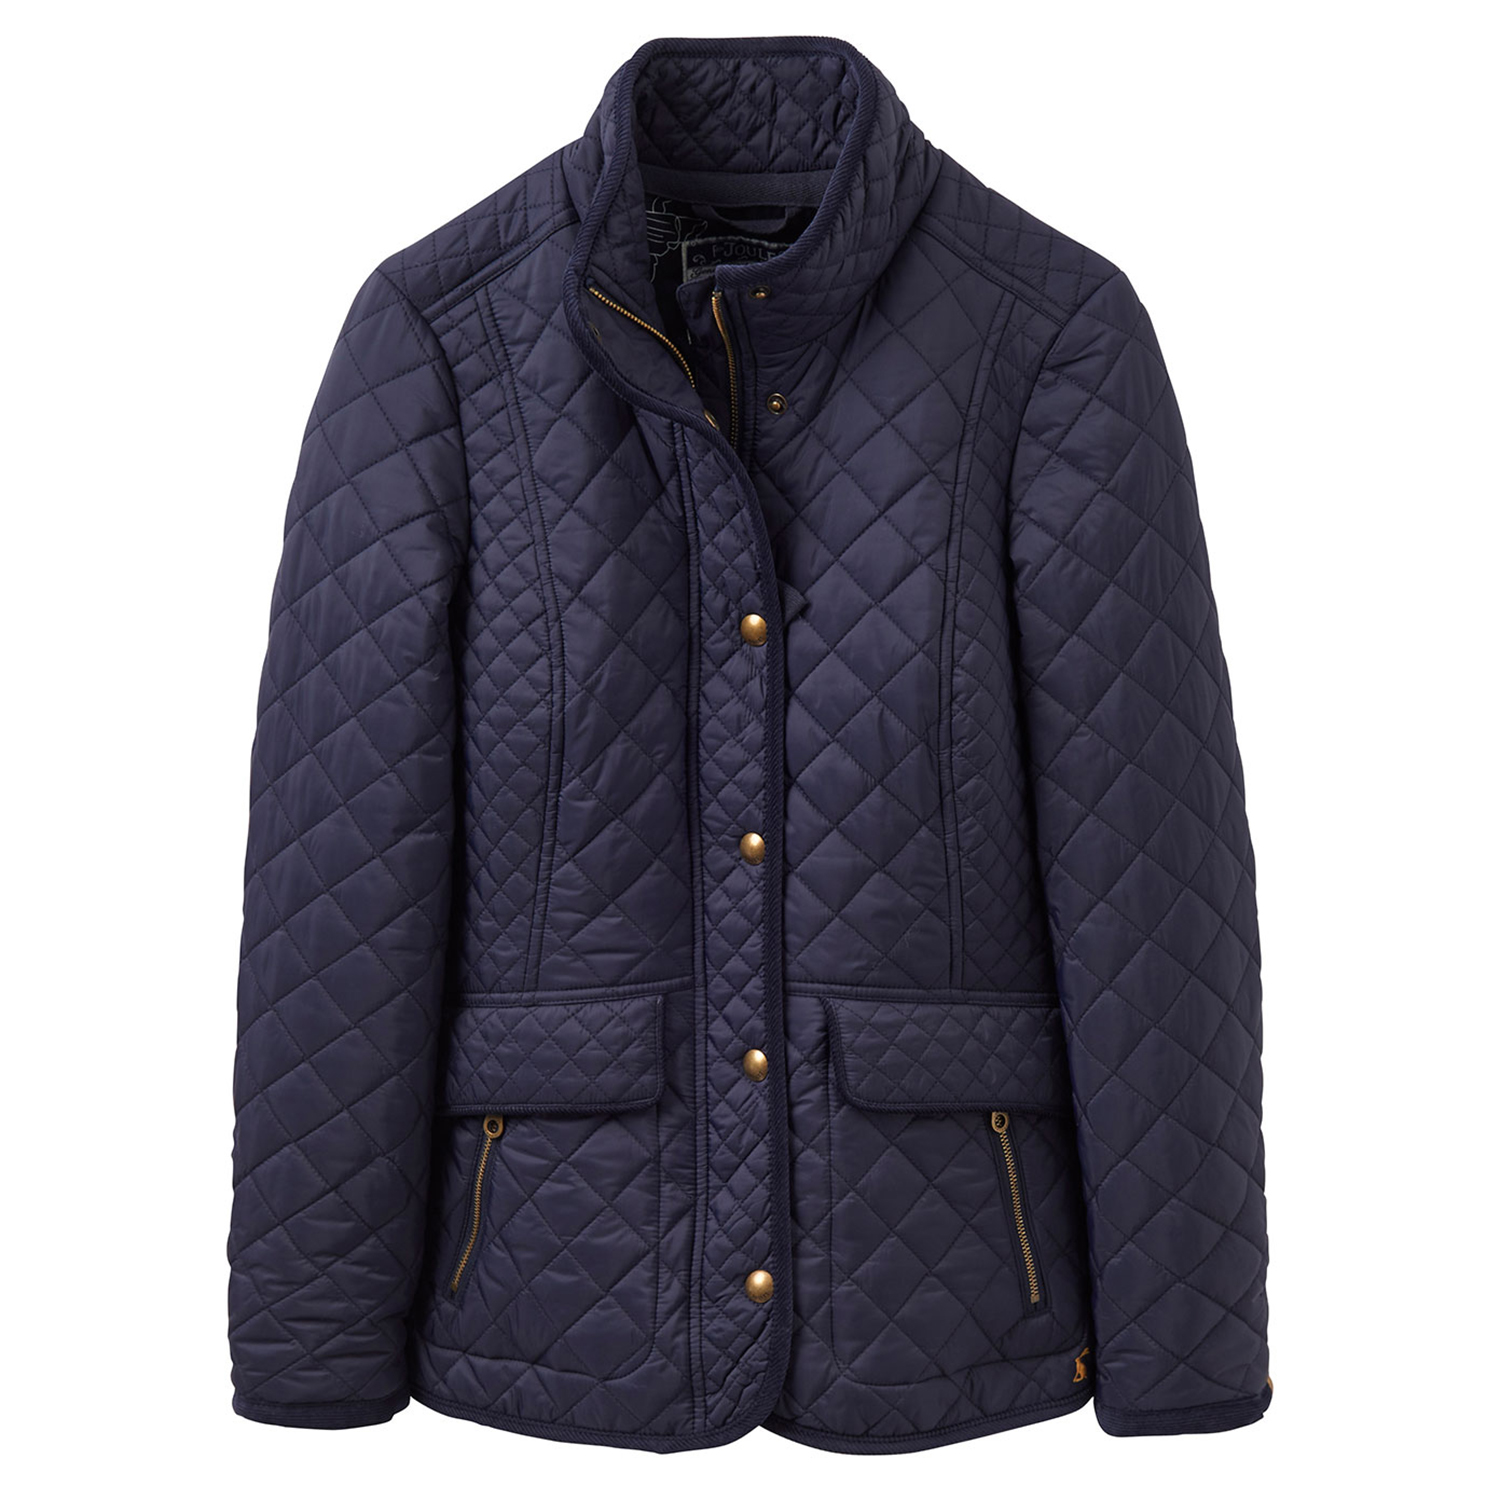 Joules Newdale Quilted , Jacka Dam Marine Navy rea hos